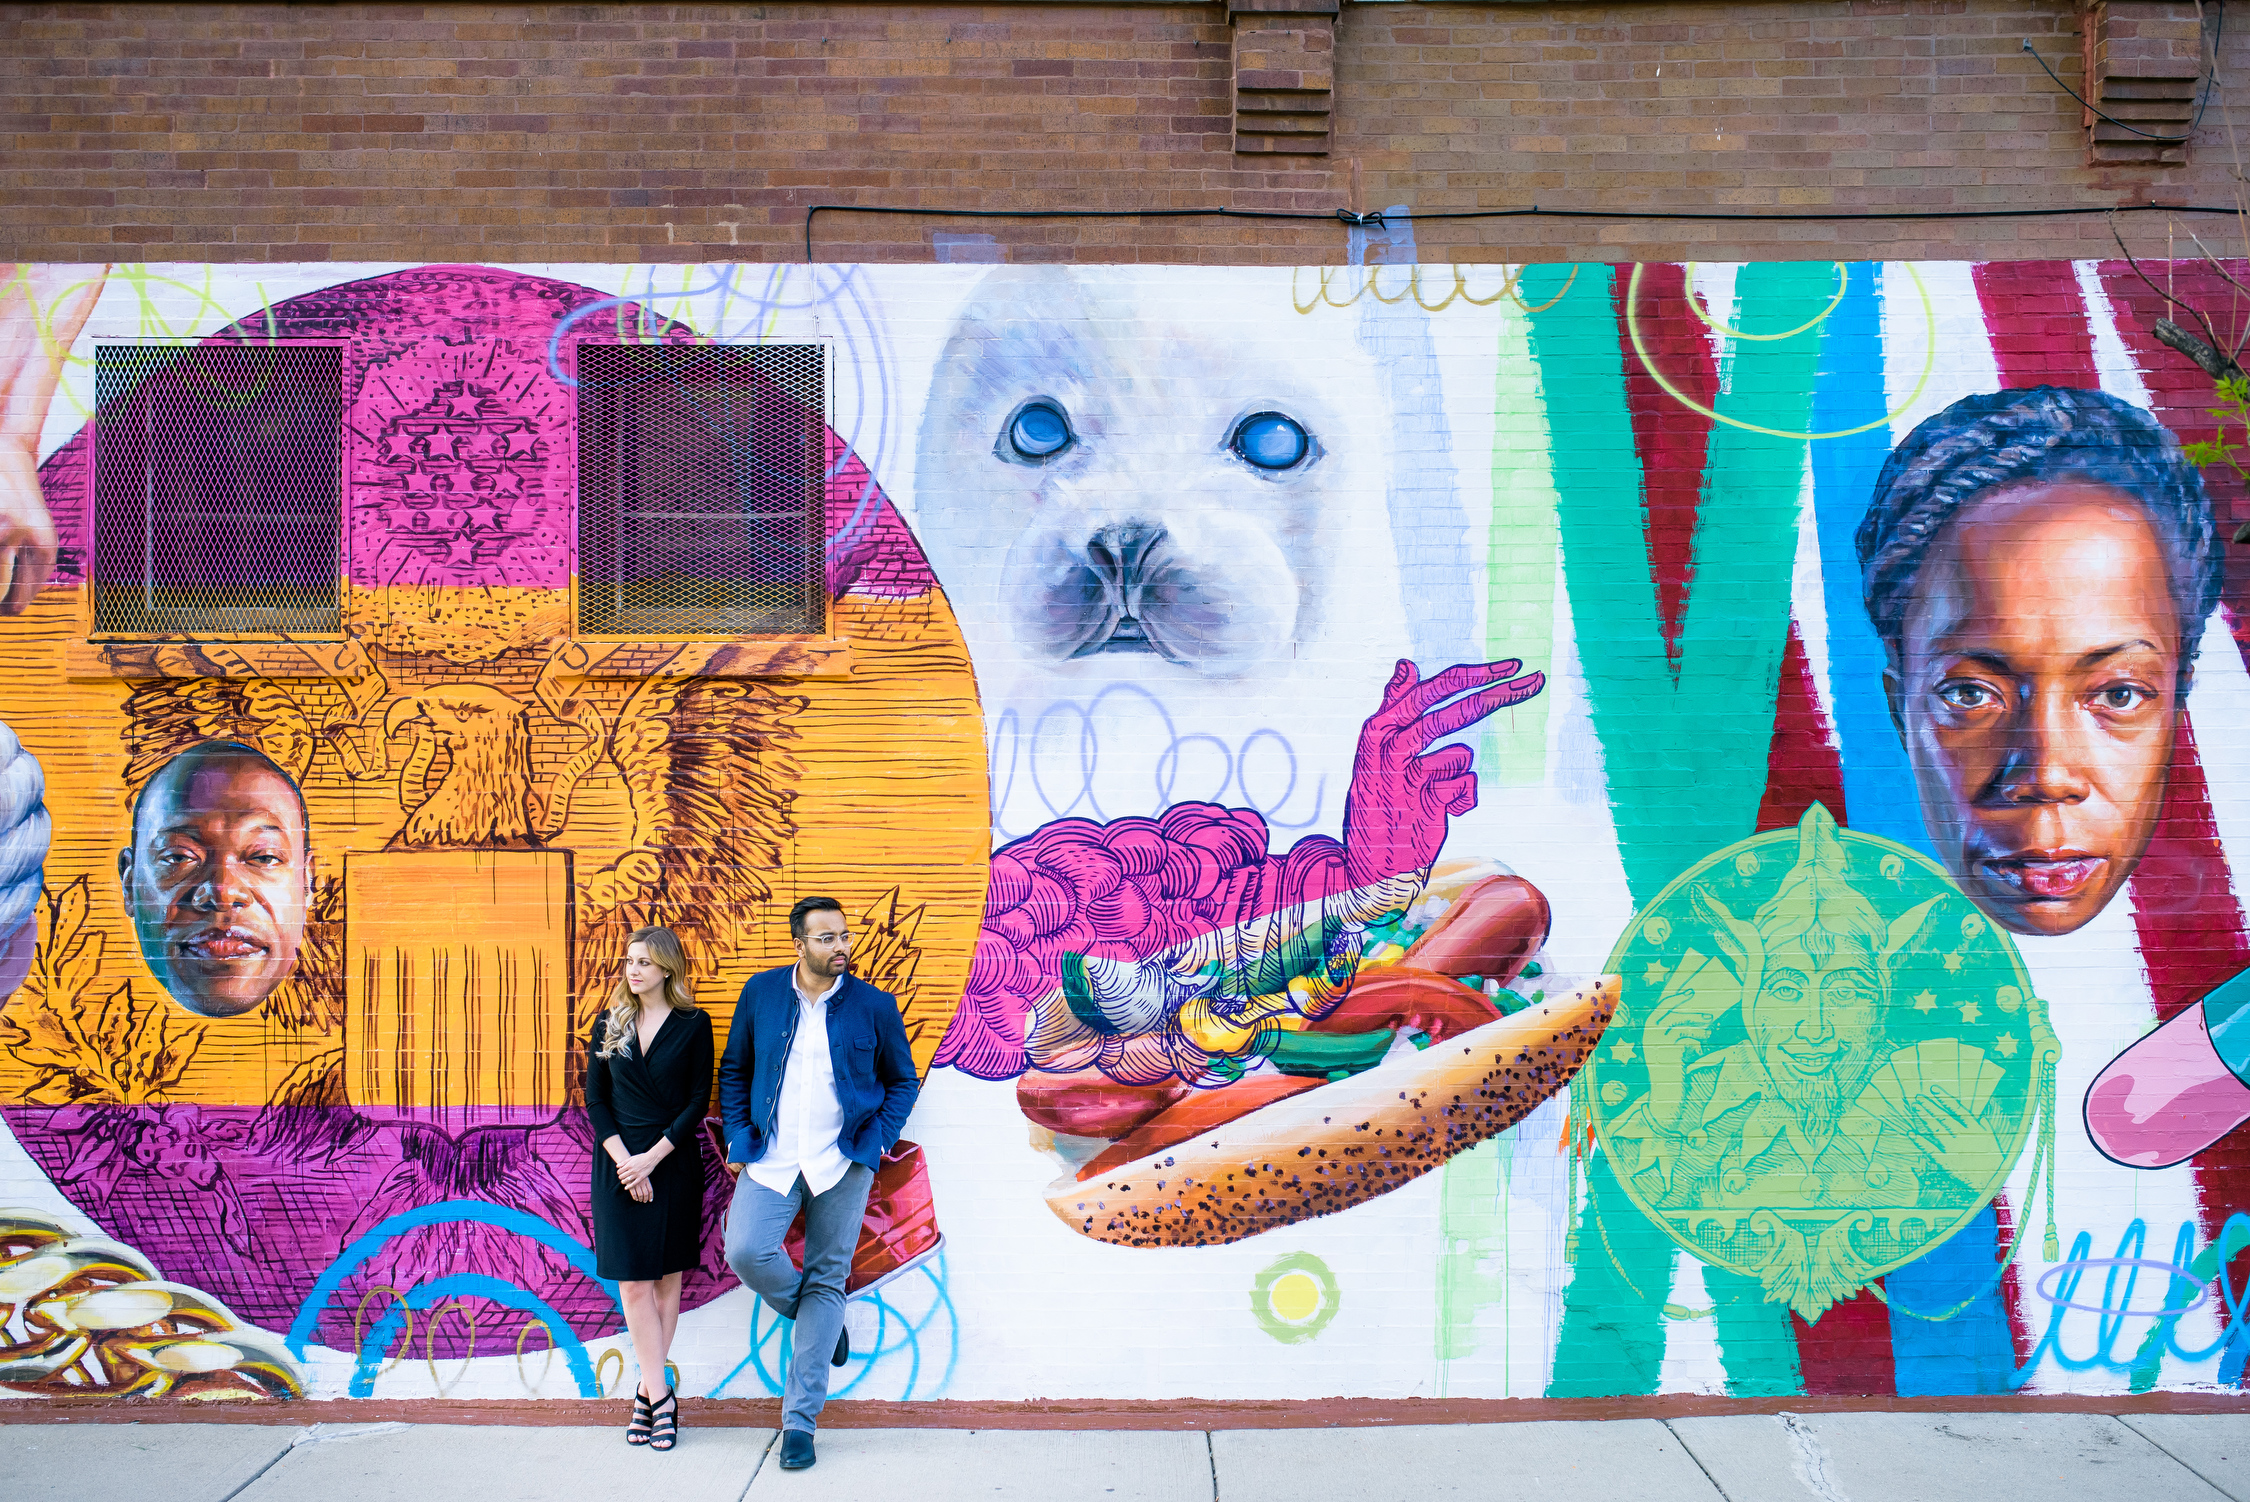 Humboldt Park Chicago engagement session in front of a street art mural.